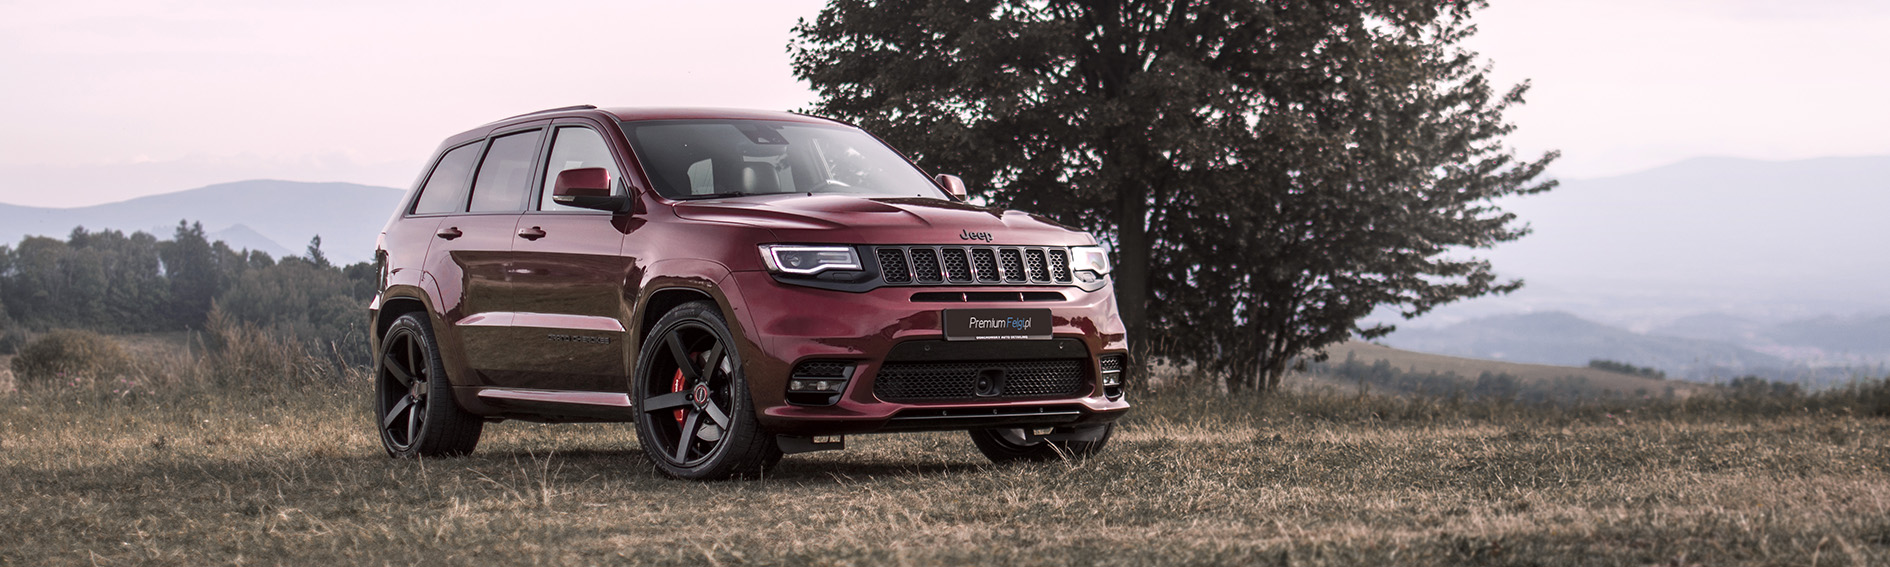 "Customer car gallery - wheels for Jeep SRT | Vossen CV3-R | 22"" - PremiumFelgi"